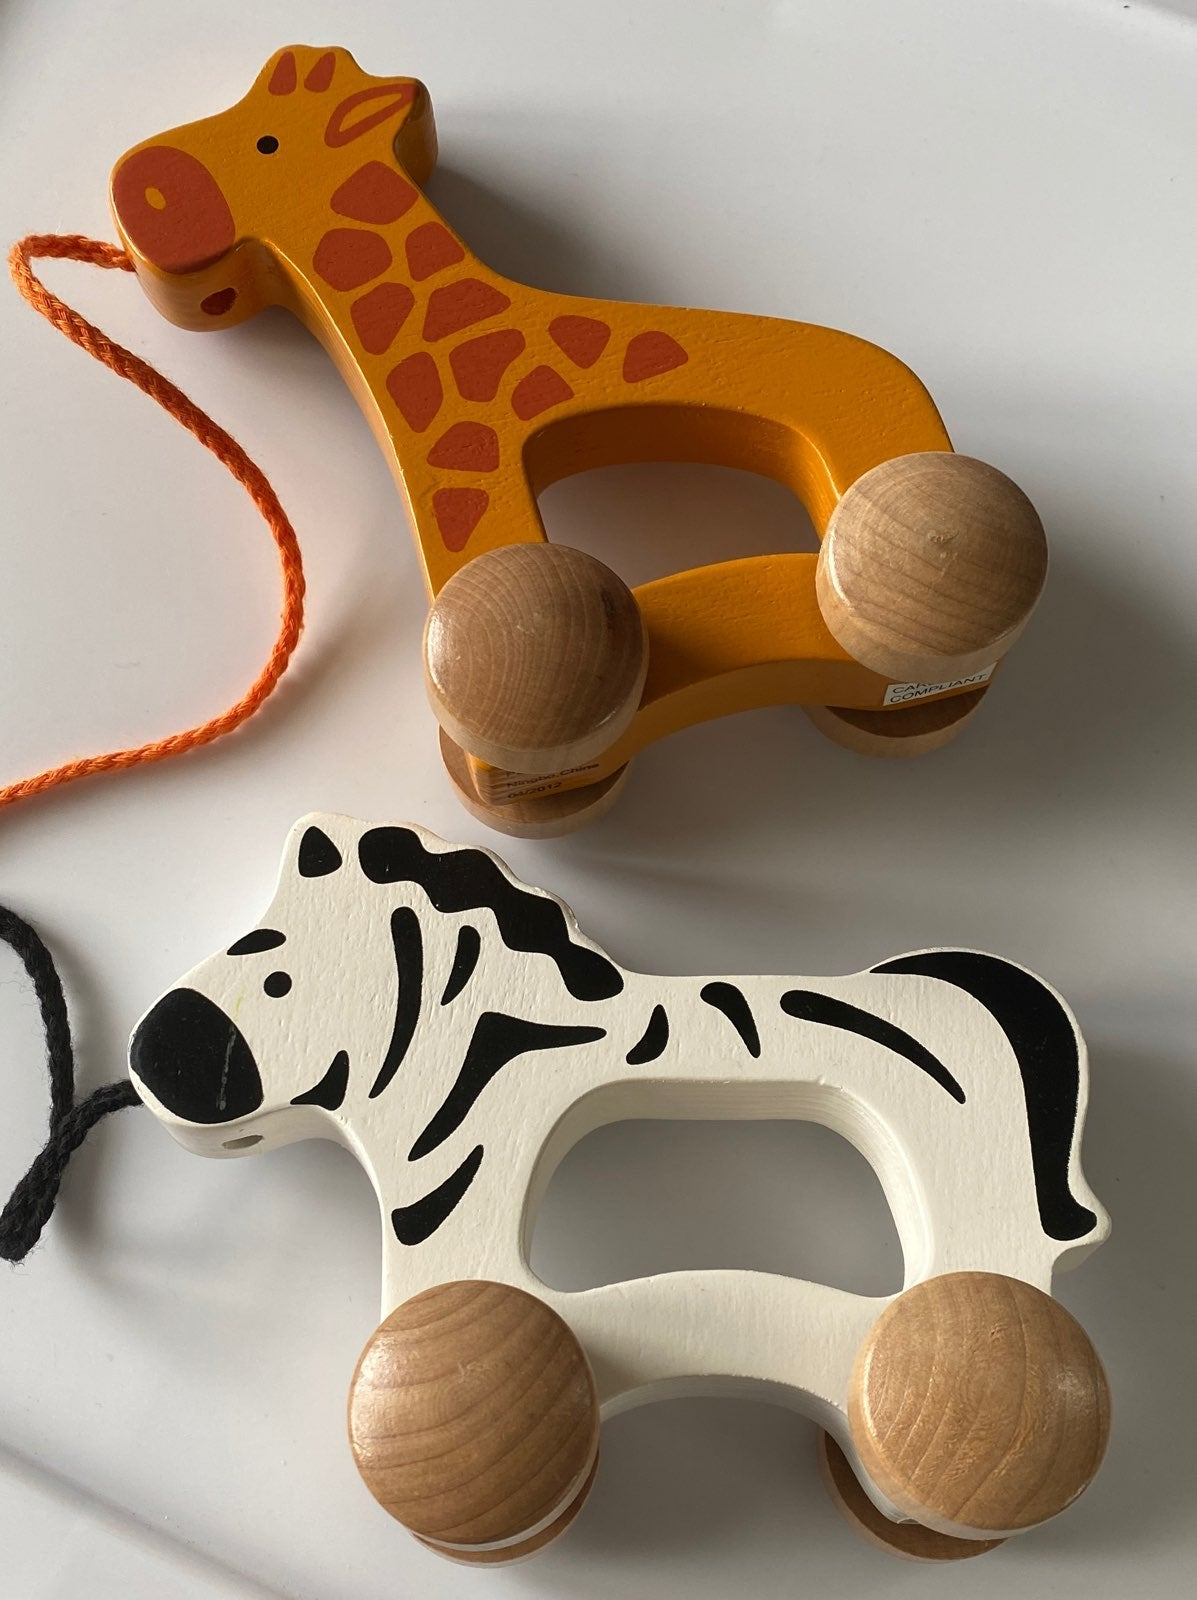 Pottery Barn Kids wooden pull toys